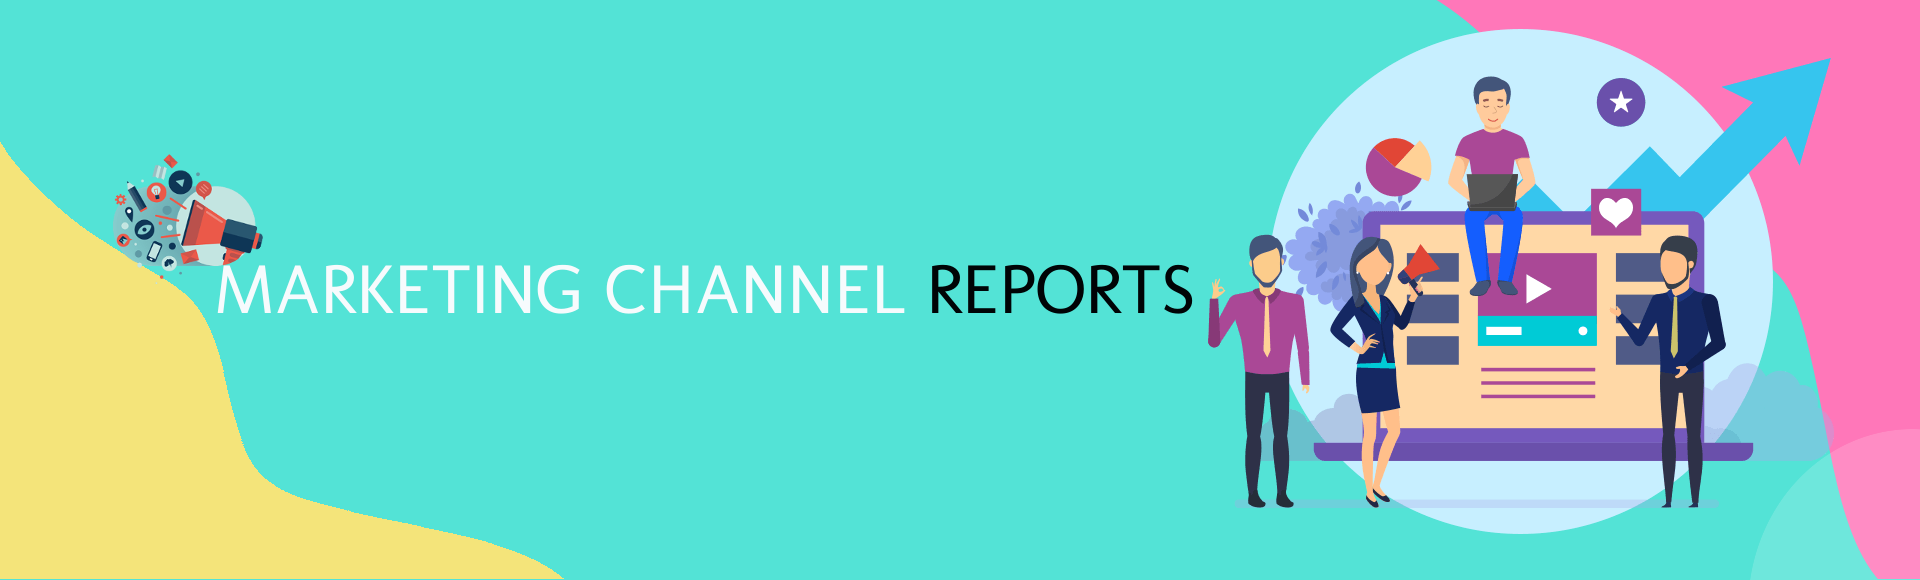 marketing channel reports